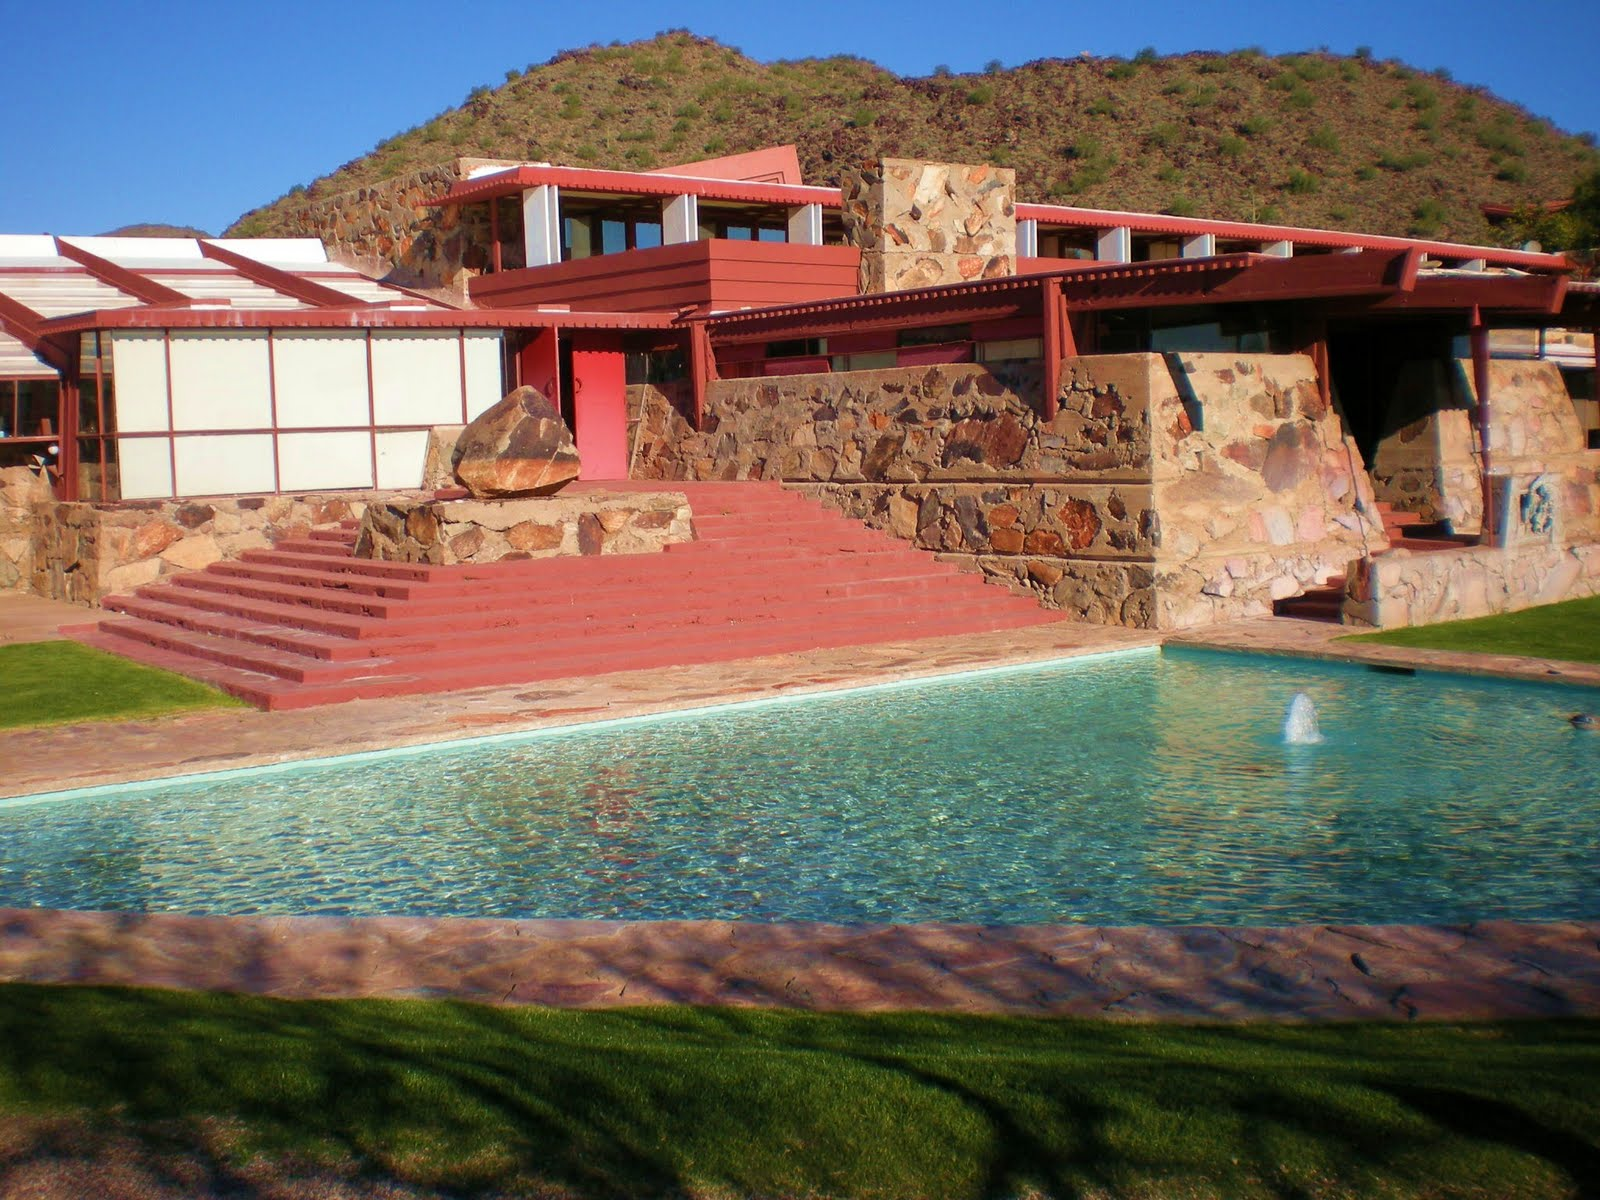 Where the Wild Things Are: Taliesin West